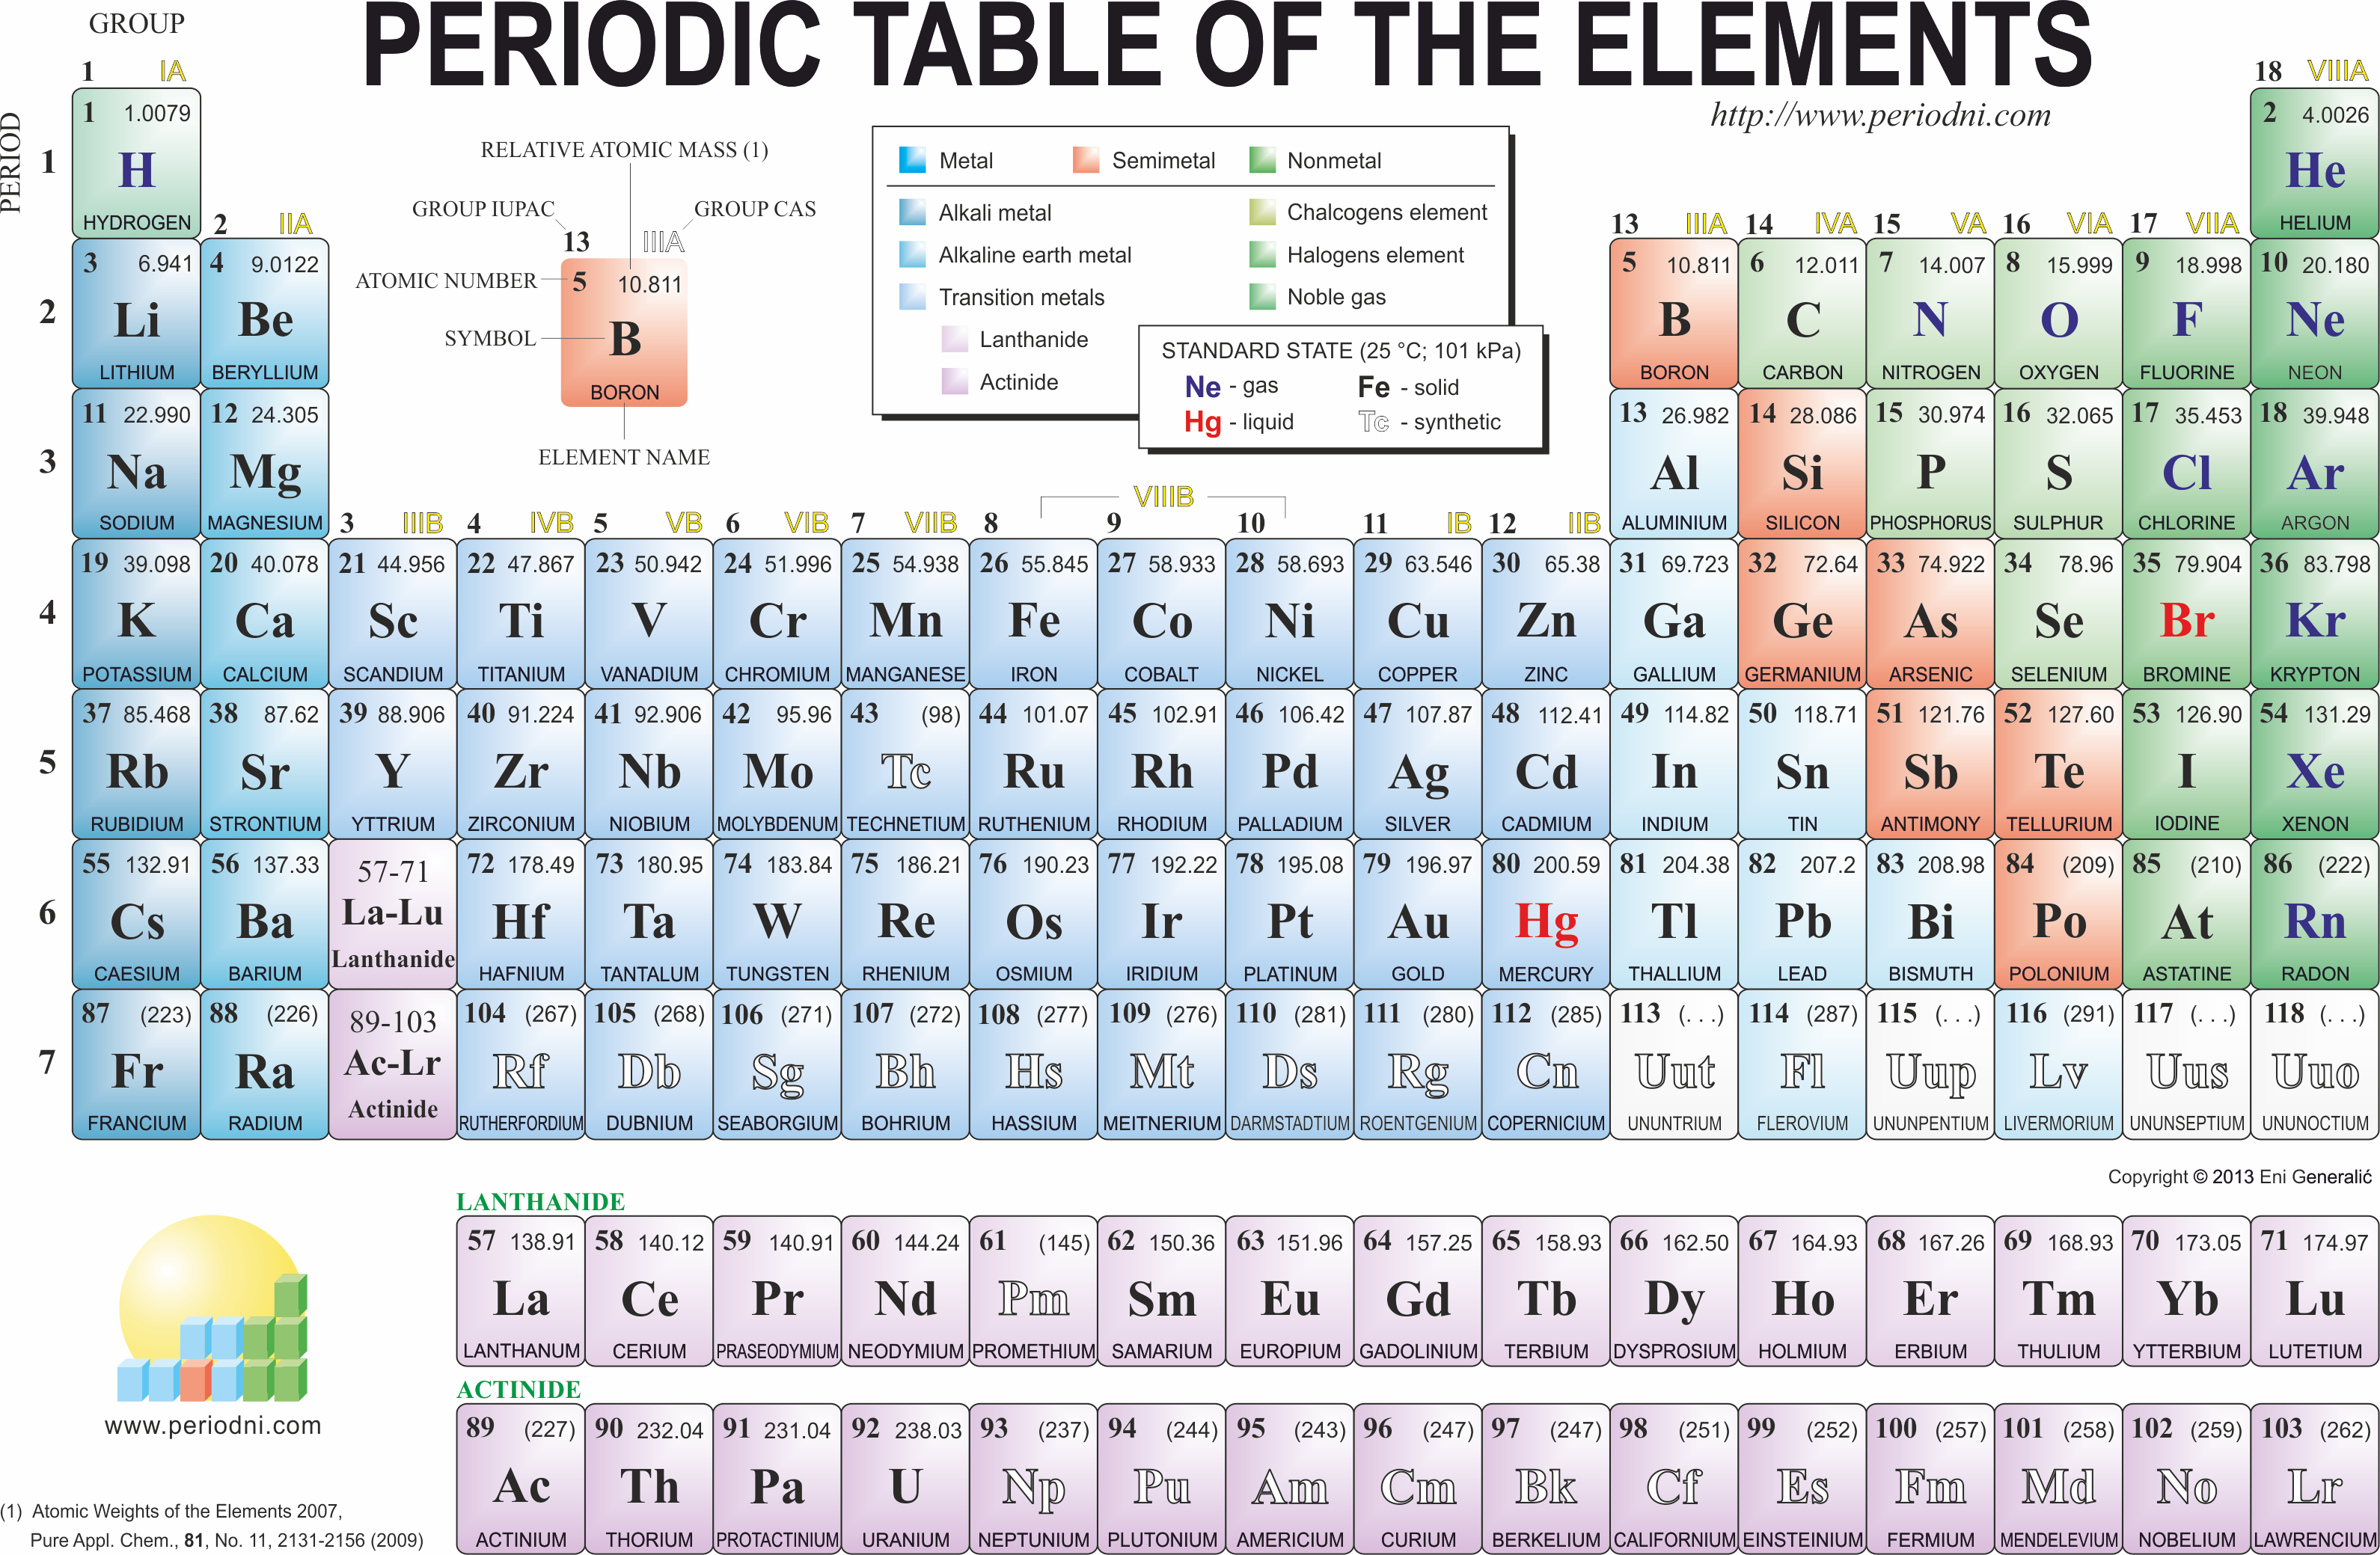 Periodic table of the elements Chemistry Dictionary & Glossary